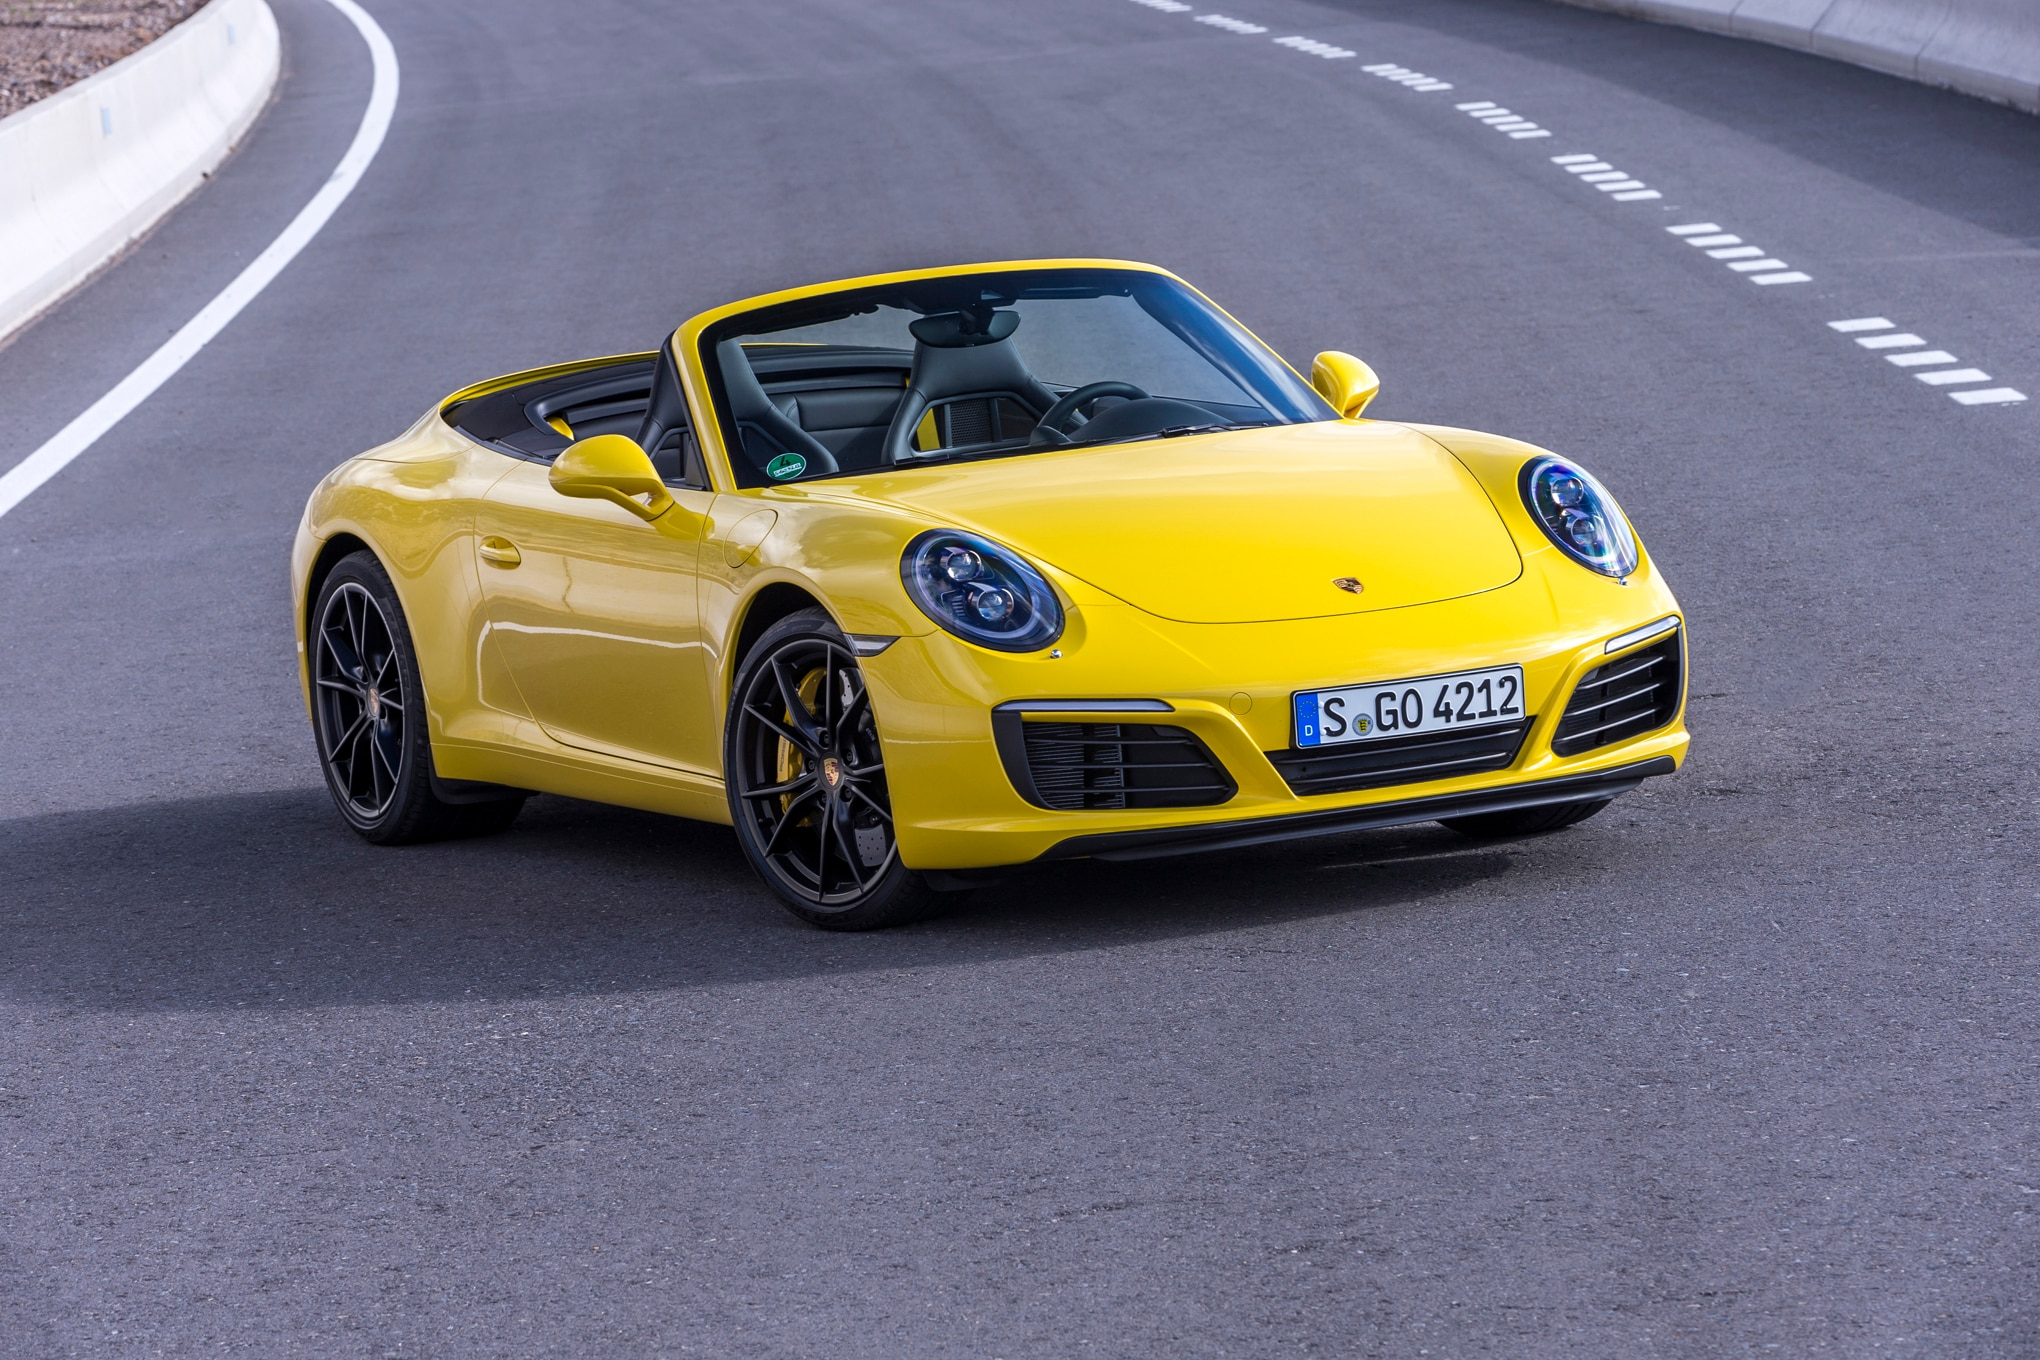 All Porsche Sports Cars Are Track Cars